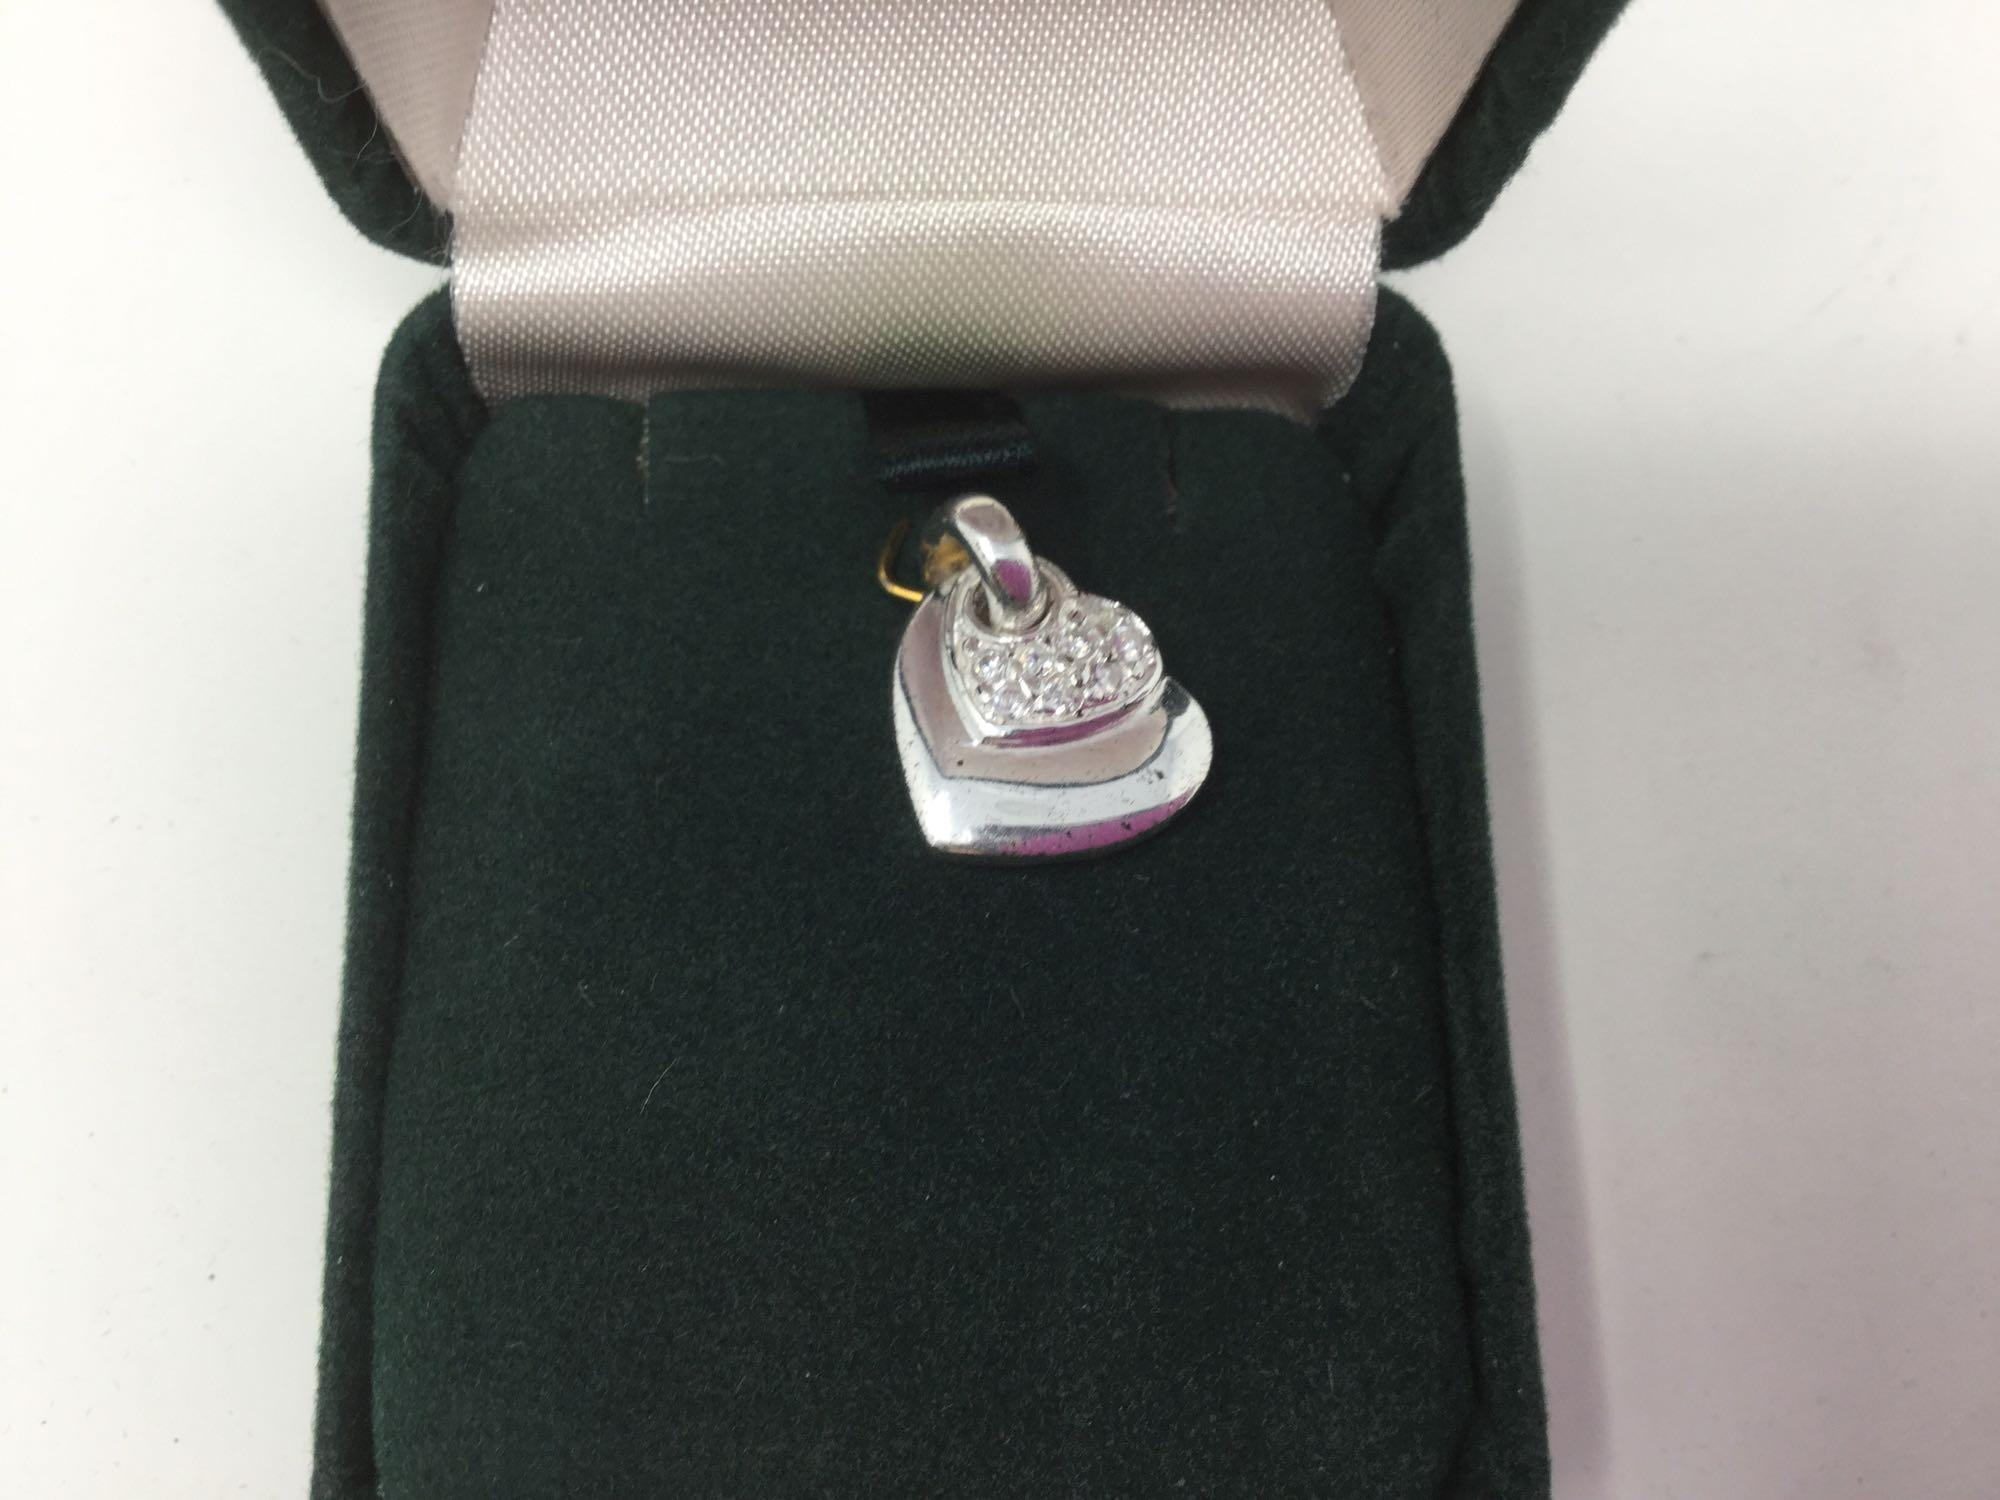 Lot 28 - Sterling Silver Cubic Zirconia Pendant - Retail $150